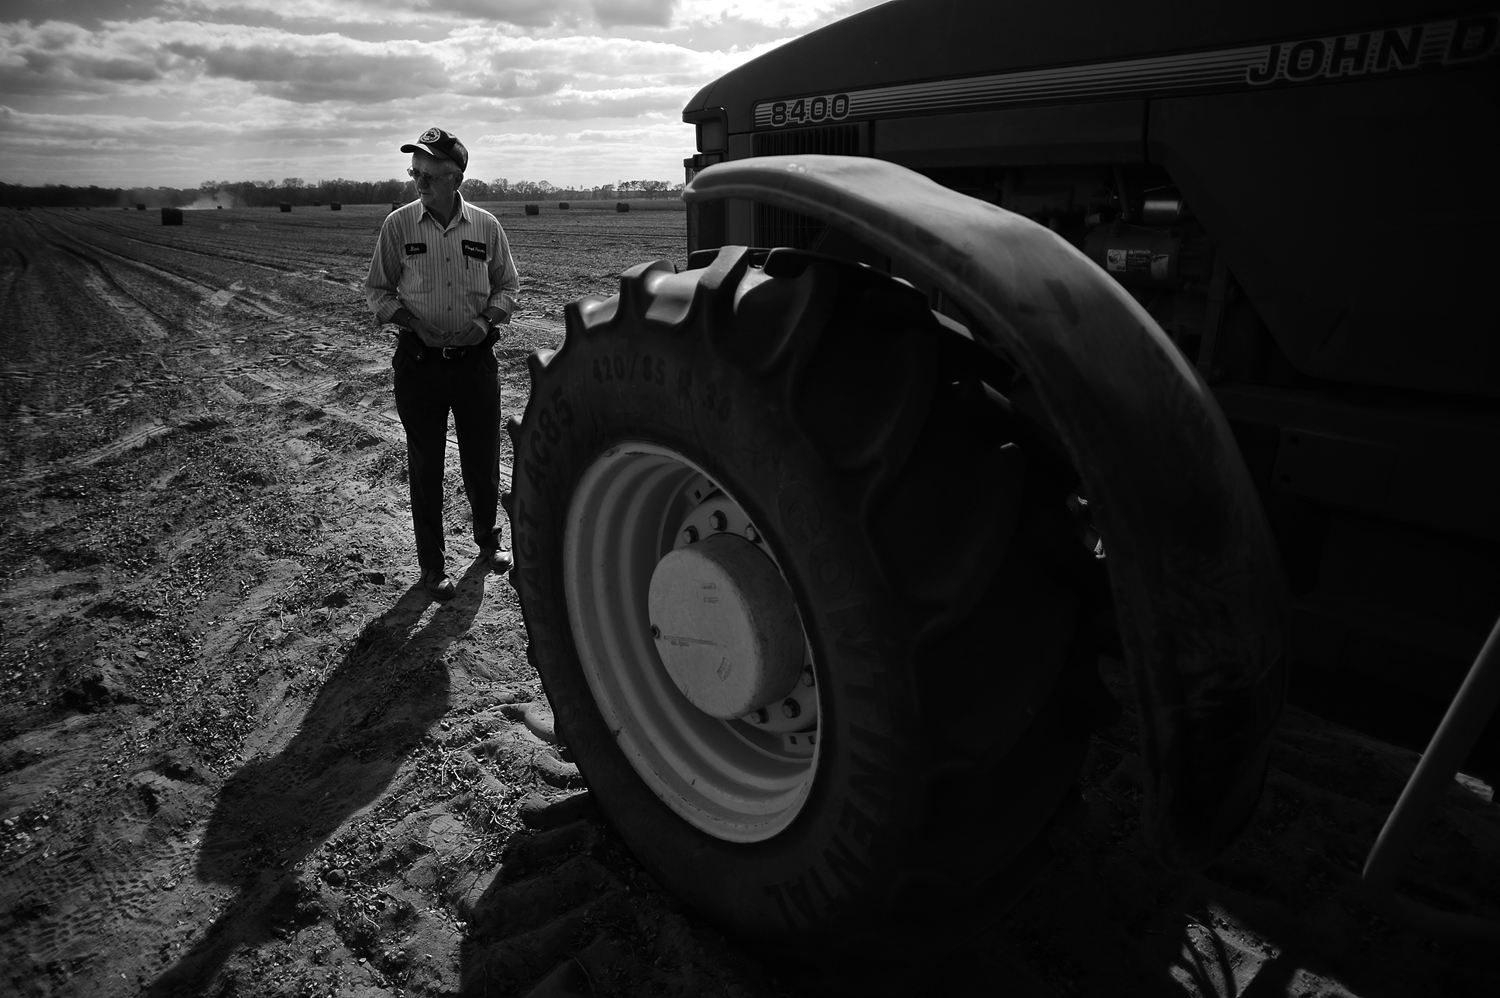 Ben Floyd, a peanut farmer from Jackson County, Fla., stands near one of his John Deere tractors as he waits to begin work in late October 2011.